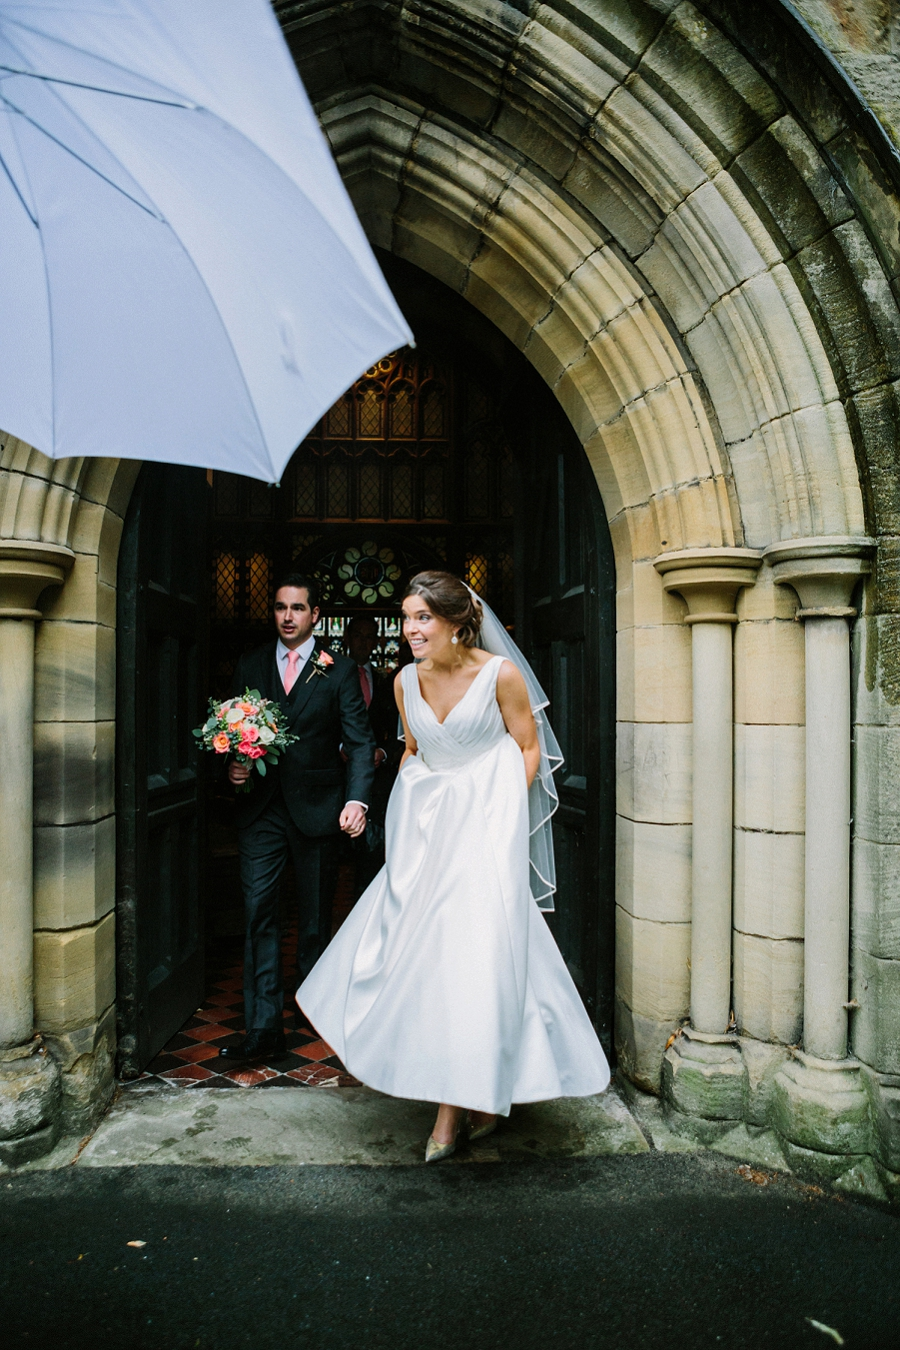 Sarah Janes Photography, Wedding photographer Chester, London, Sheffield, Wirral, Wrexham, Liverpool, Natural wedding photography, Quirky, documentary_0141.jpg